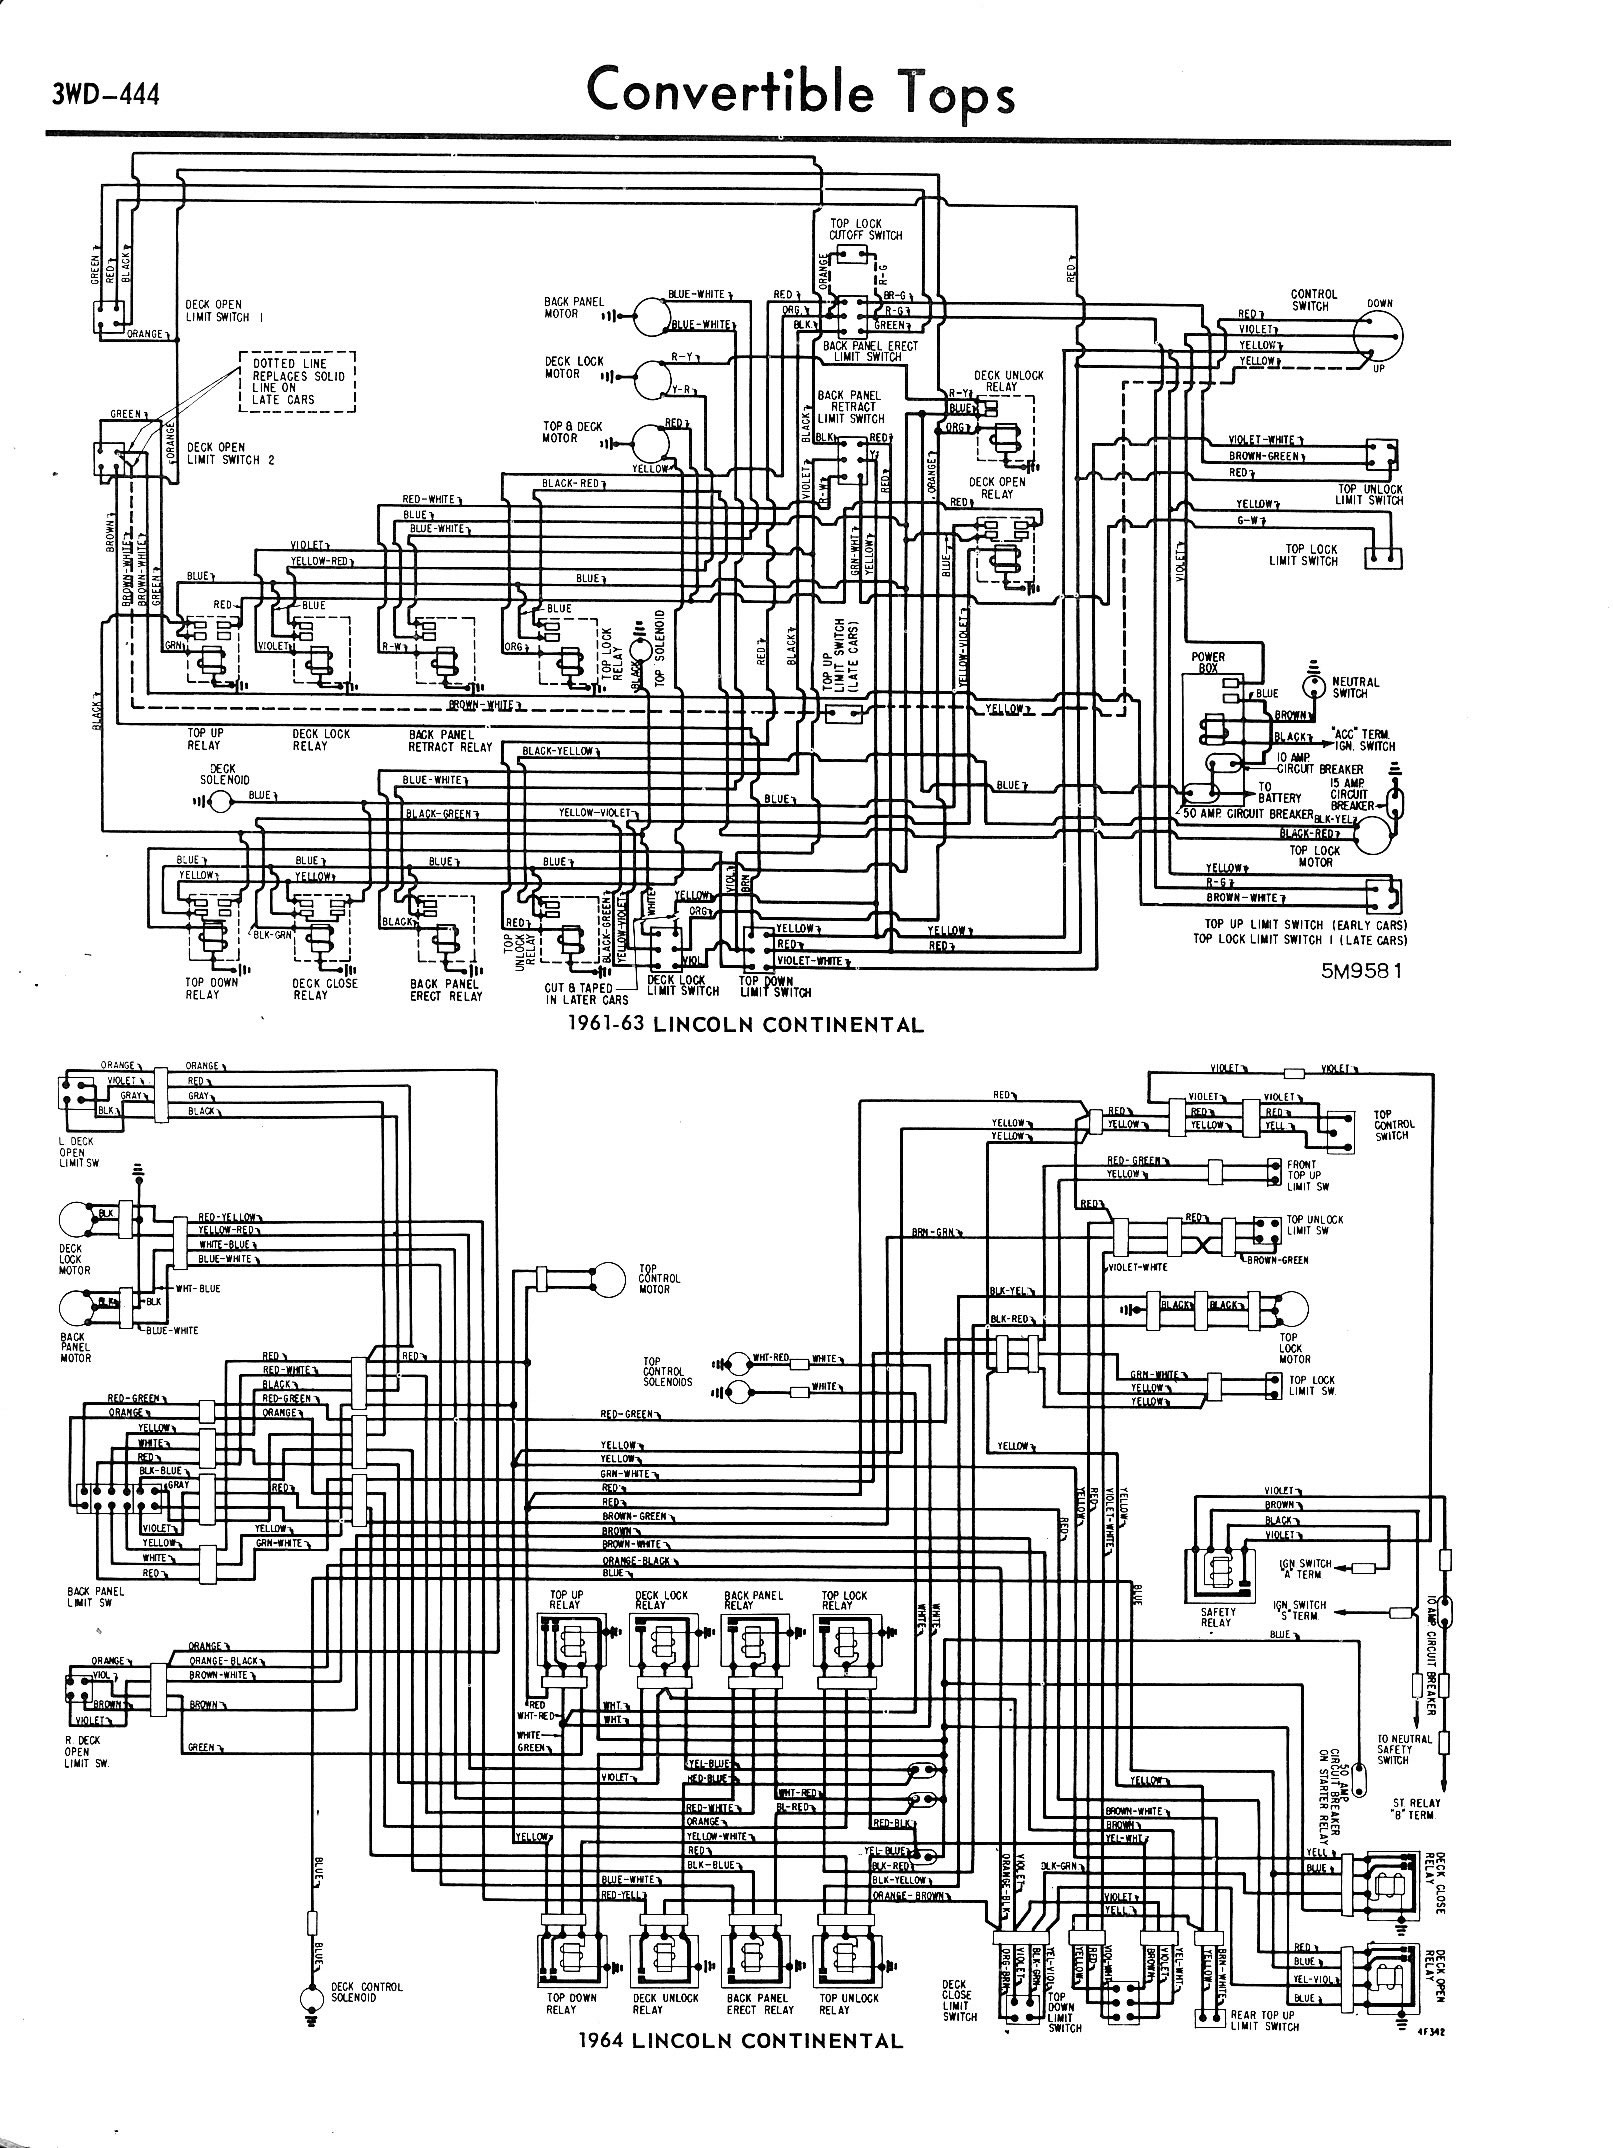 Ford Diagrams on ford ignition module schematic, 1989 ford f250 ignition wiring diagram, 1976 ford ignition wiring diagram, ford electrical wiring diagrams, 1994 ford bronco ignition wiring diagram, ford cop ignition wiring diagrams, ford wiring harness diagrams, 1980 ford ignition wiring diagram, ford falcon wiring-diagram, ignition coil wiring diagram, ford 302 ignition wiring diagram, msd ignition wiring diagram, ford tractor ignition switch wiring, ford ranger 2.9 wiring-diagram, ford ignition solenoid, basic ignition system diagram, 1979 ford ignition wiring diagram, 1968 ford f100 ignition wiring diagram, 1974 ford ignition wiring diagram, ford ignition wiring diagram fuel,